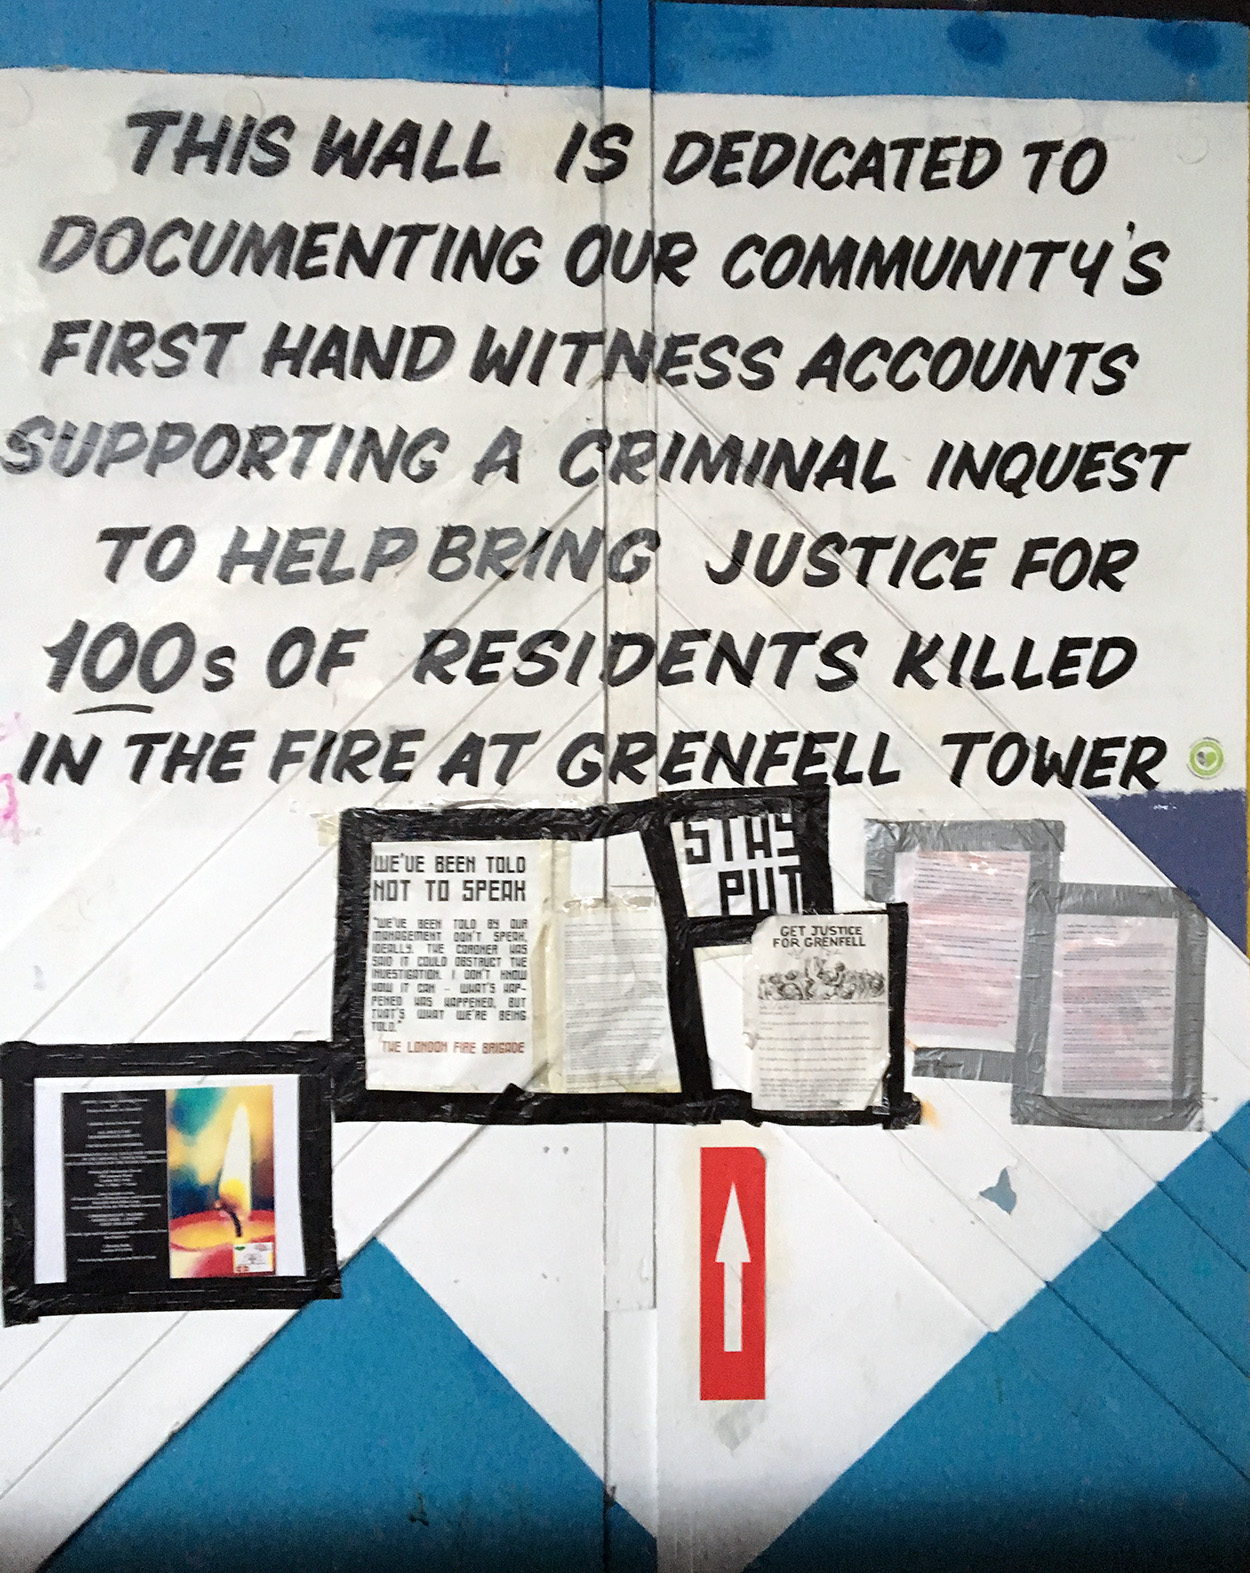 Grenfell Tower fire response